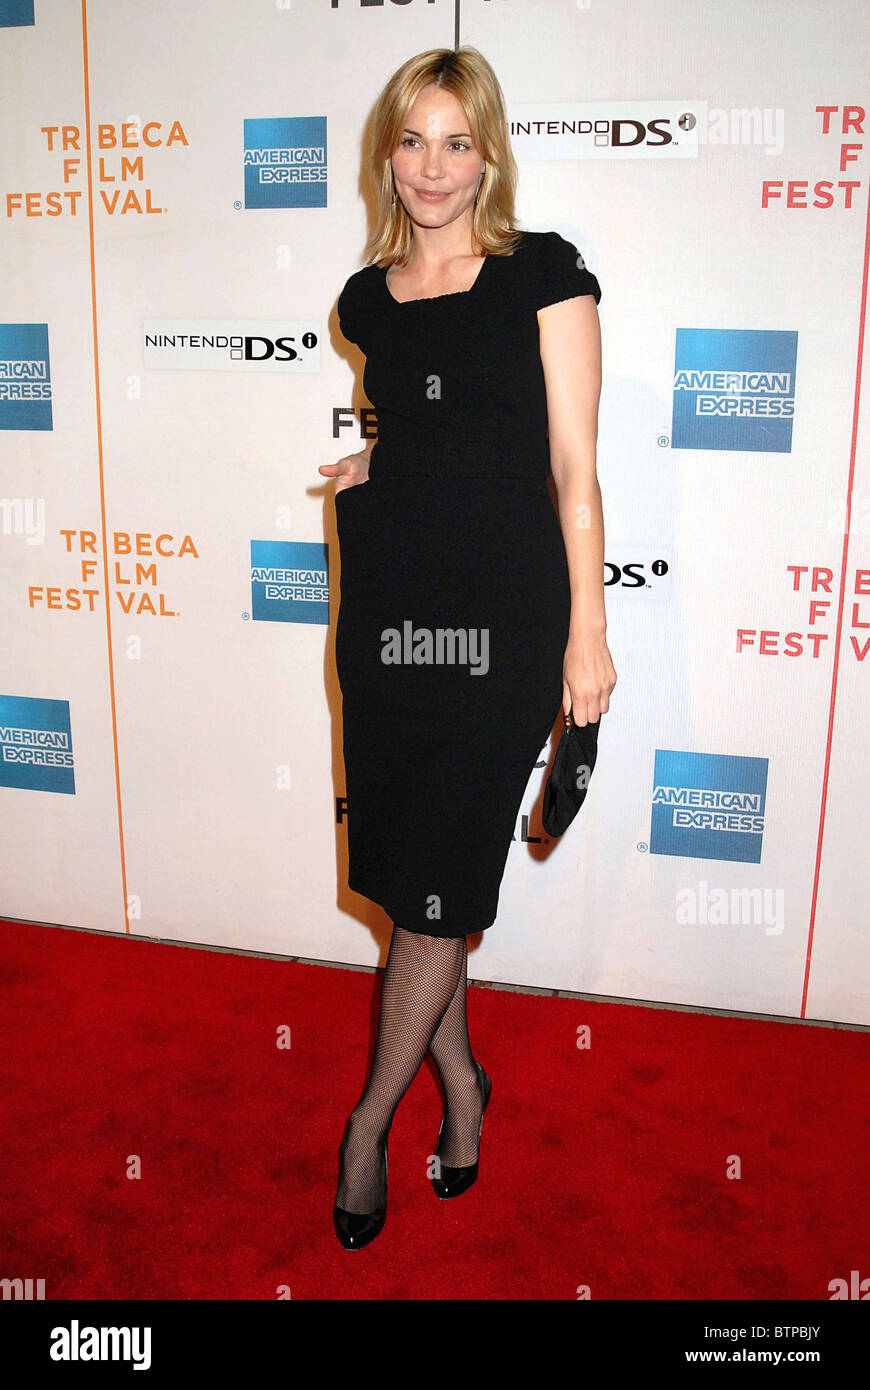 MOON Premiere at the Tribeca Film Festival - Stock Image